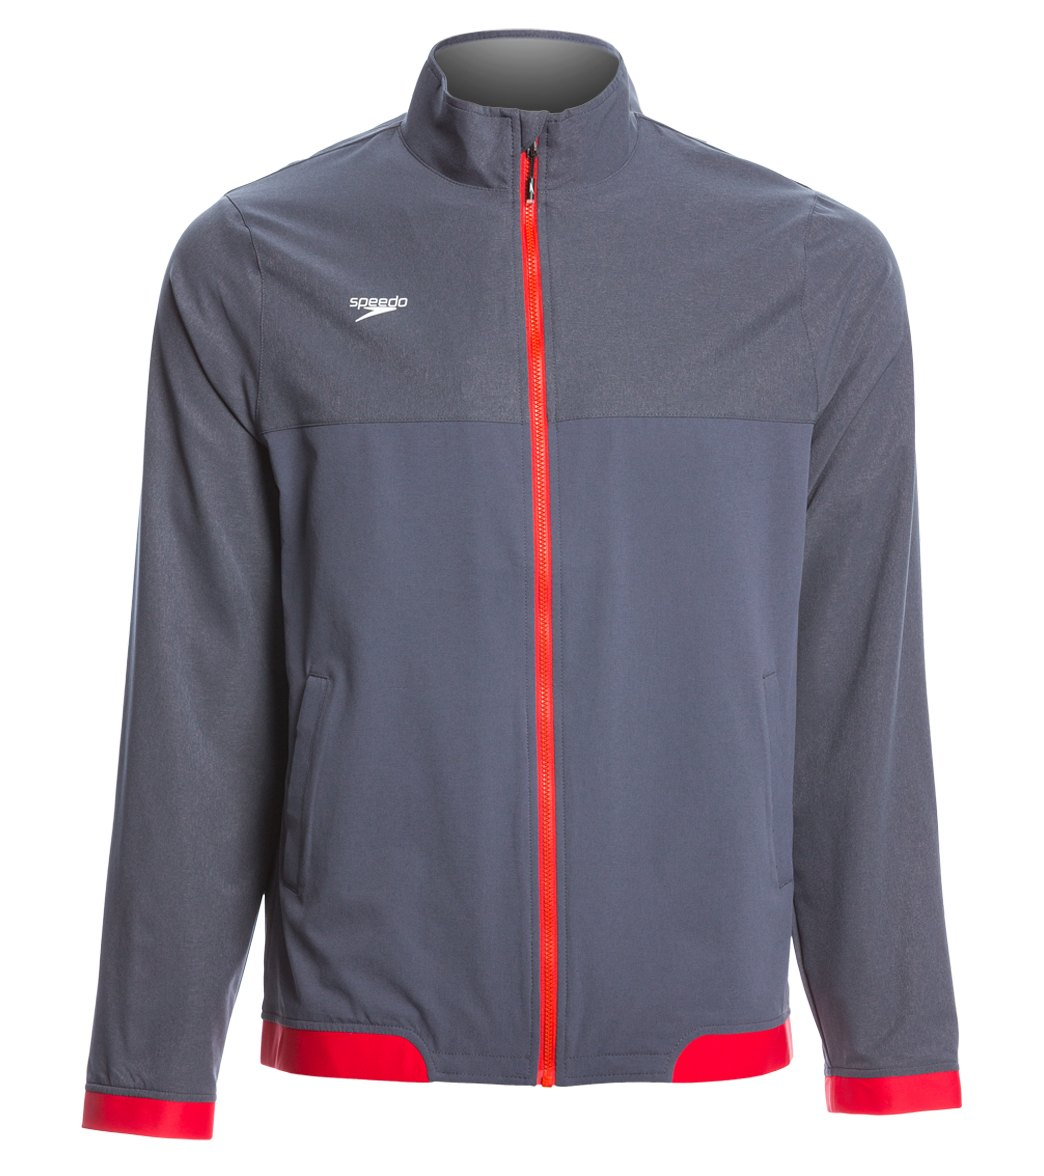 2d6bc83311a Speedo Men's Tech Warm Up Jacket at SwimOutlet.com - Free Shipping